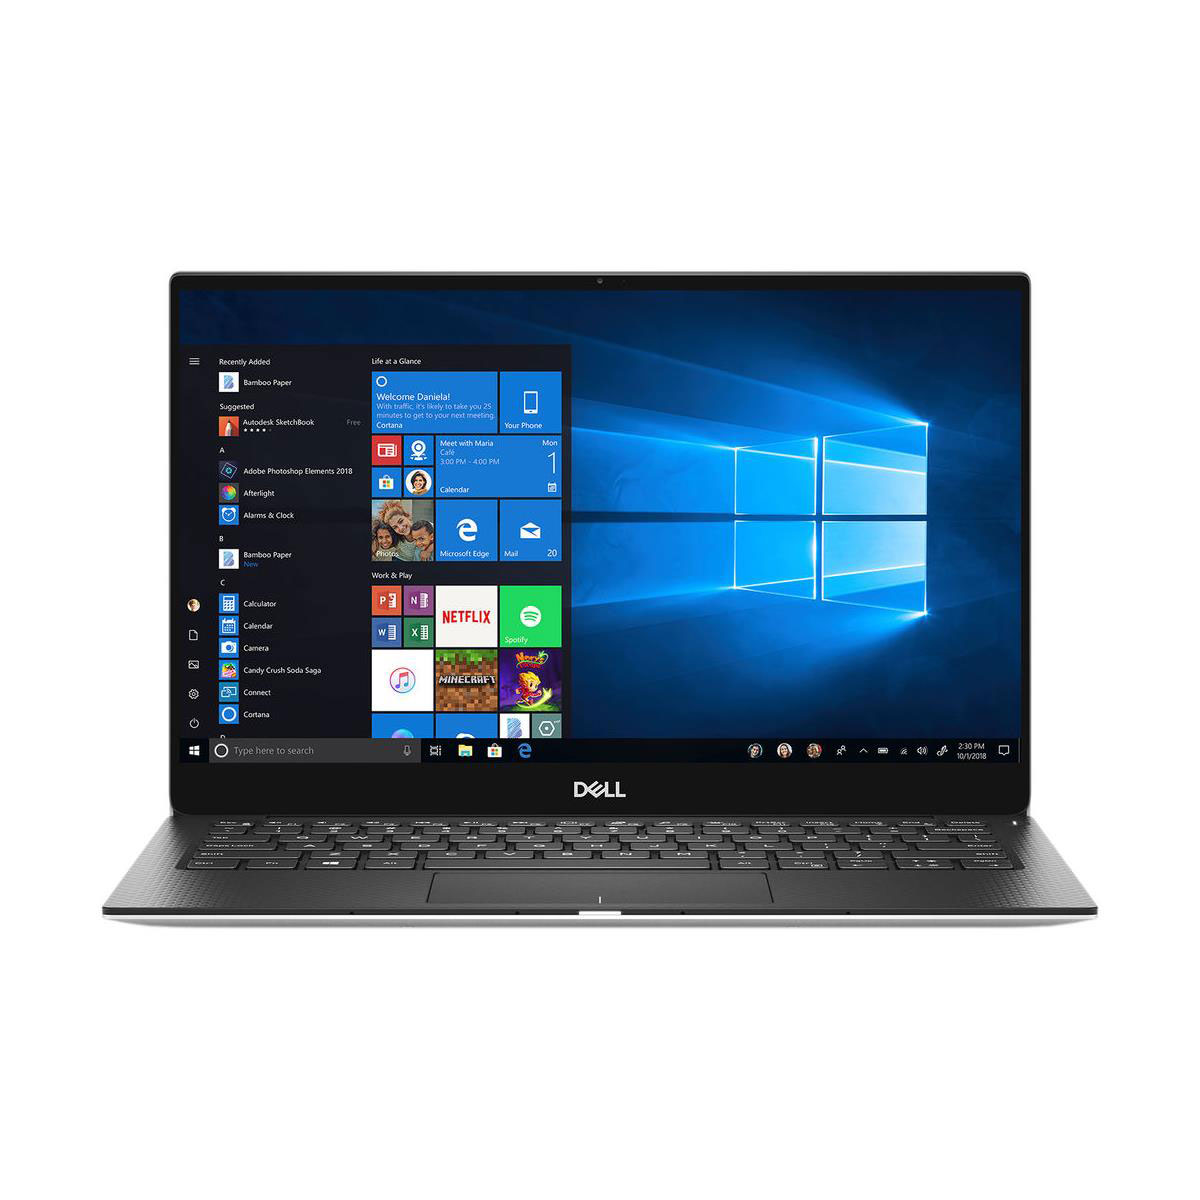 Dell Xps 13 2020 Review.Dell Xps 13 Review The First Hexa Core U Series Processor